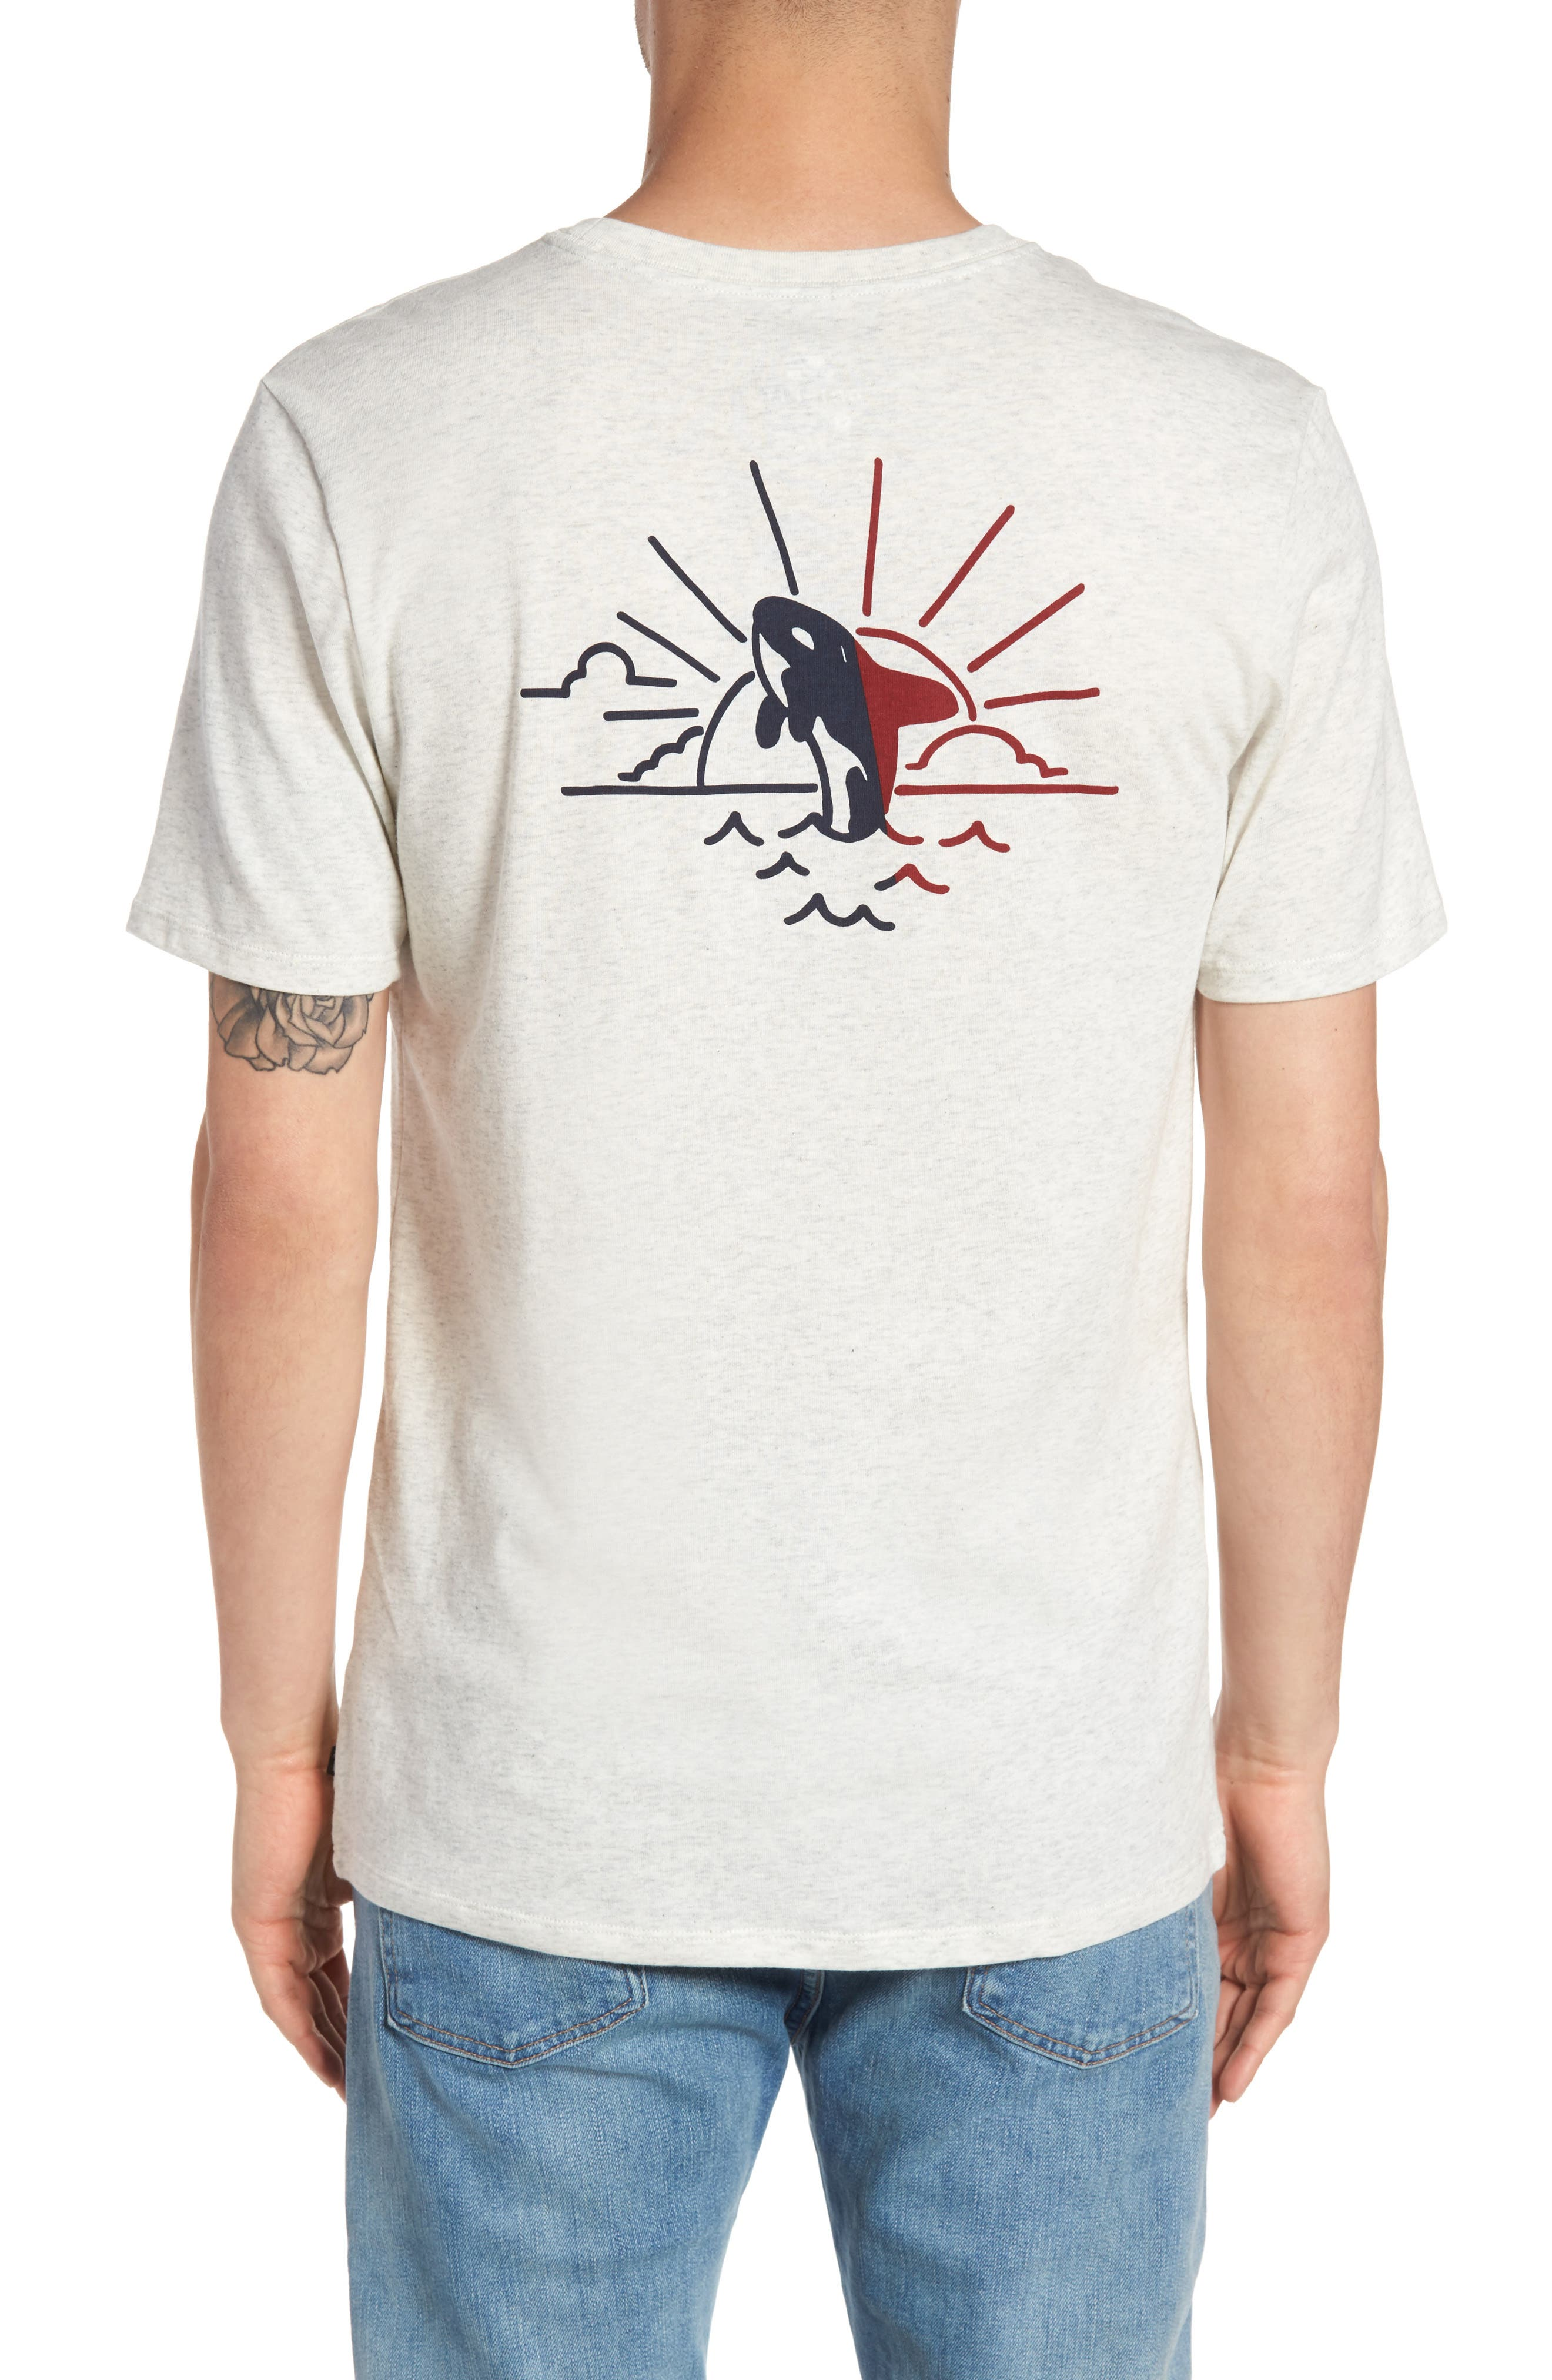 Nike Sportswear Dry Whale T-Shirt,                             Alternate thumbnail 2, color,                             251